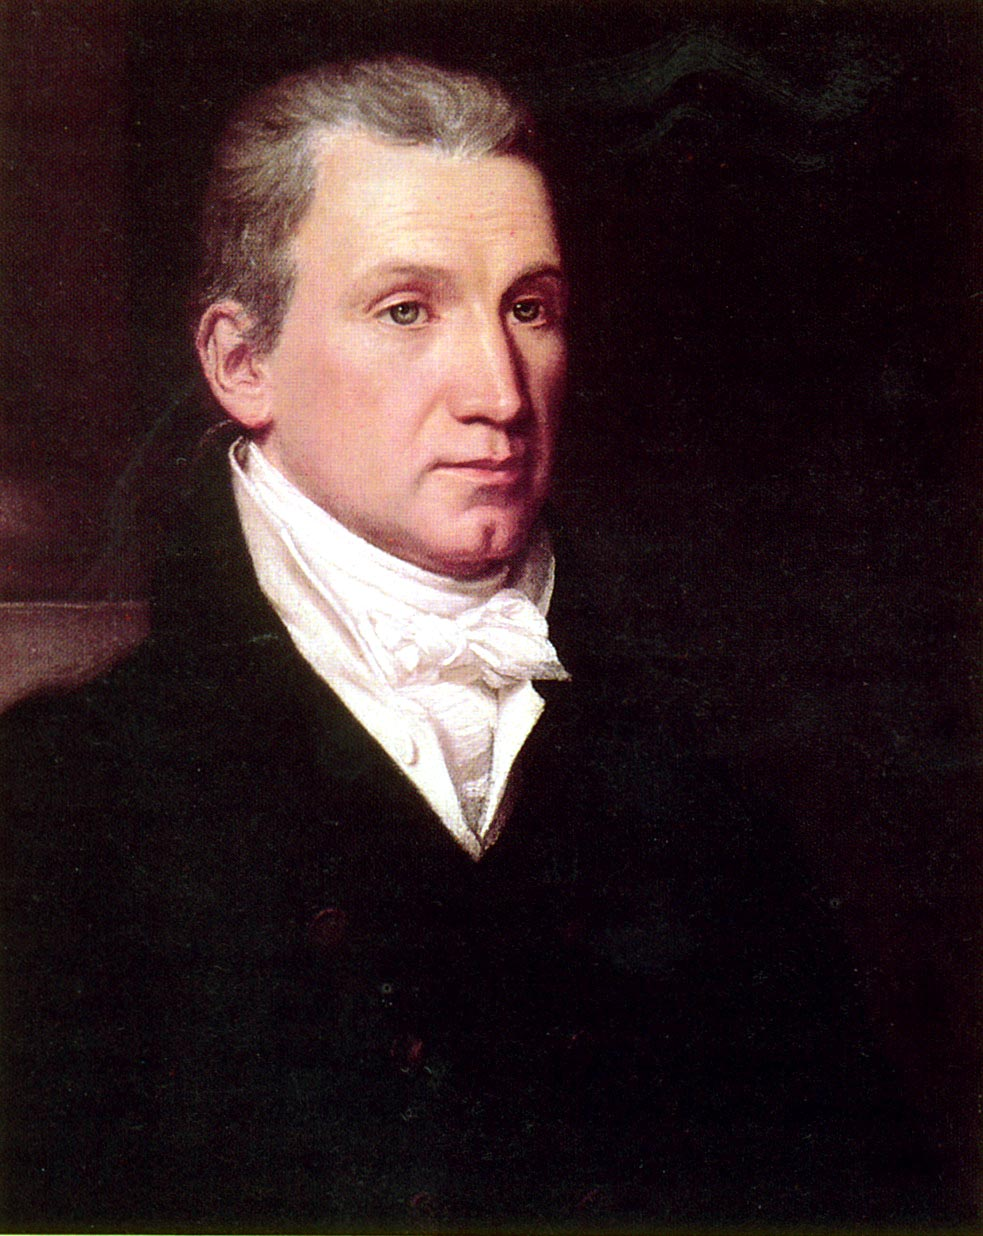 https://i2.wp.com/upload.wikimedia.org/wikipedia/commons/6/6c/James_Monroe_02.jpg